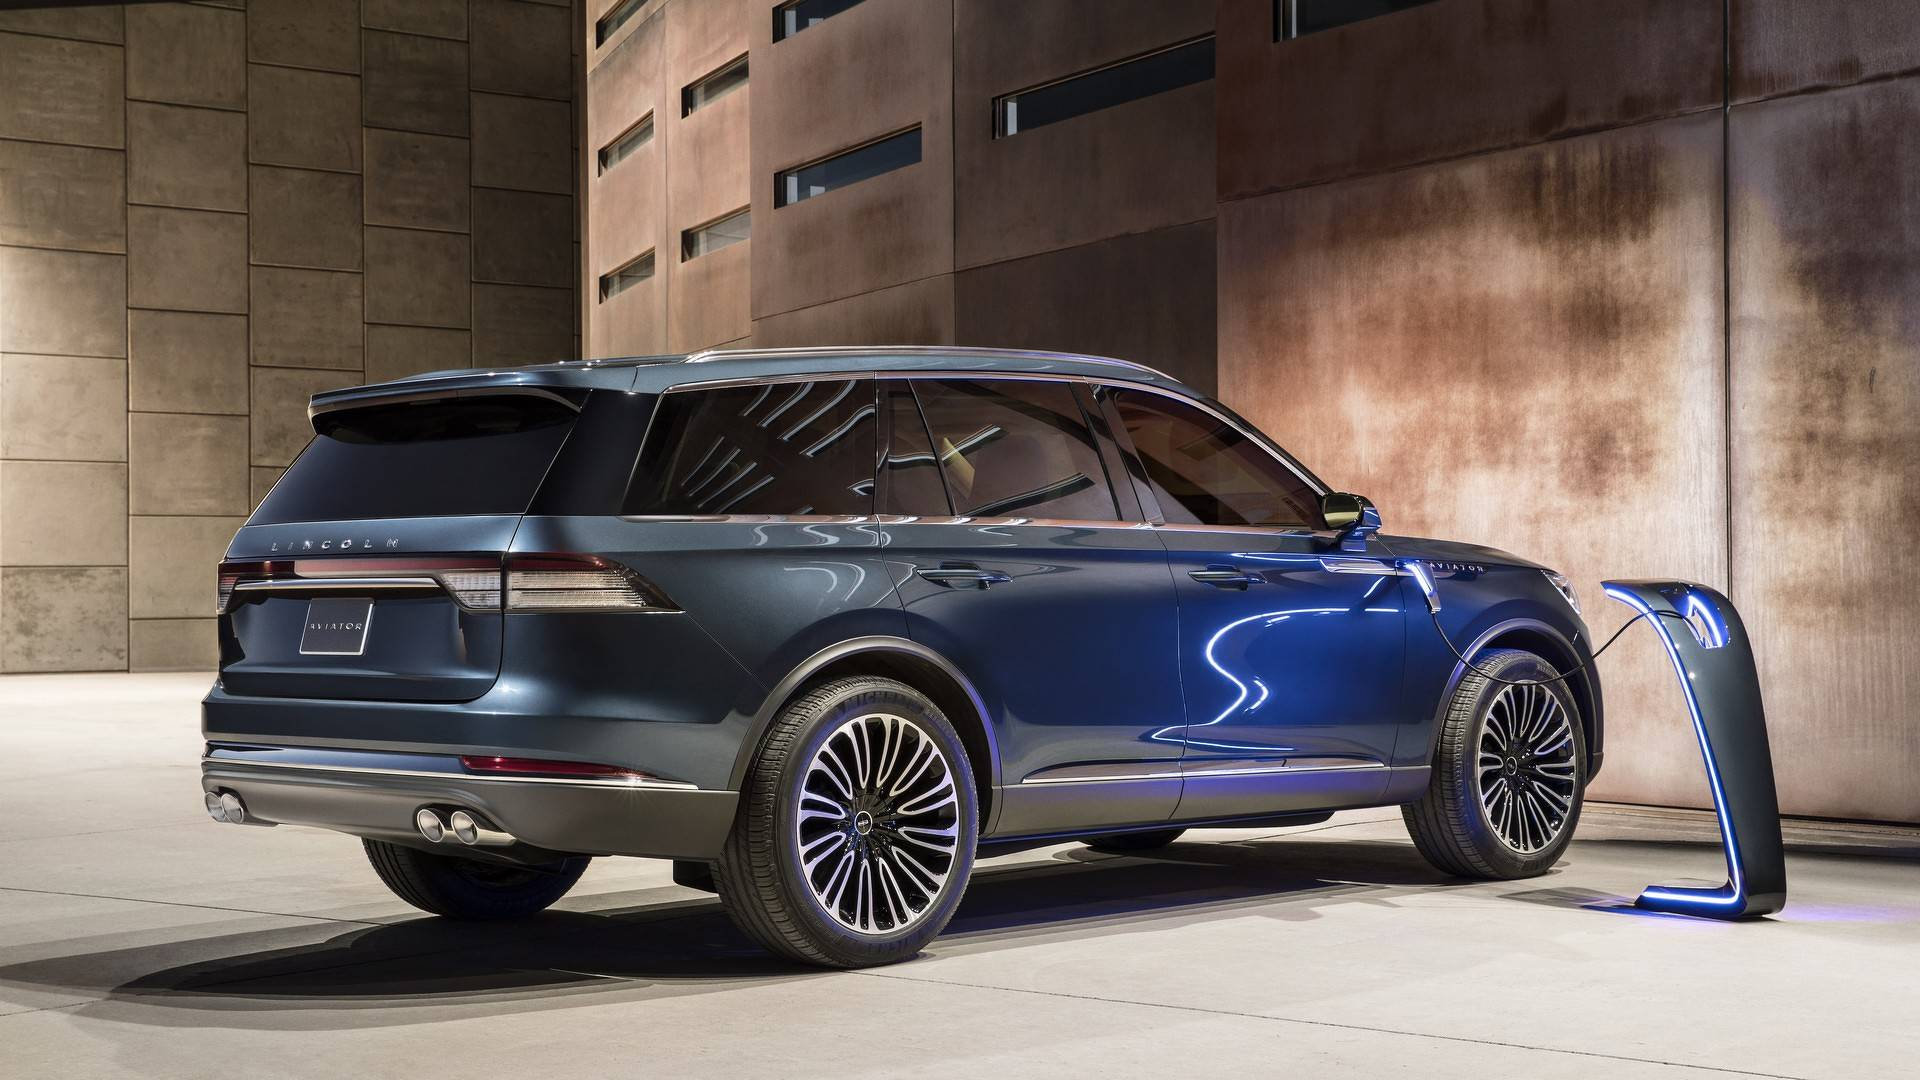 2020 lincoln aviator concept